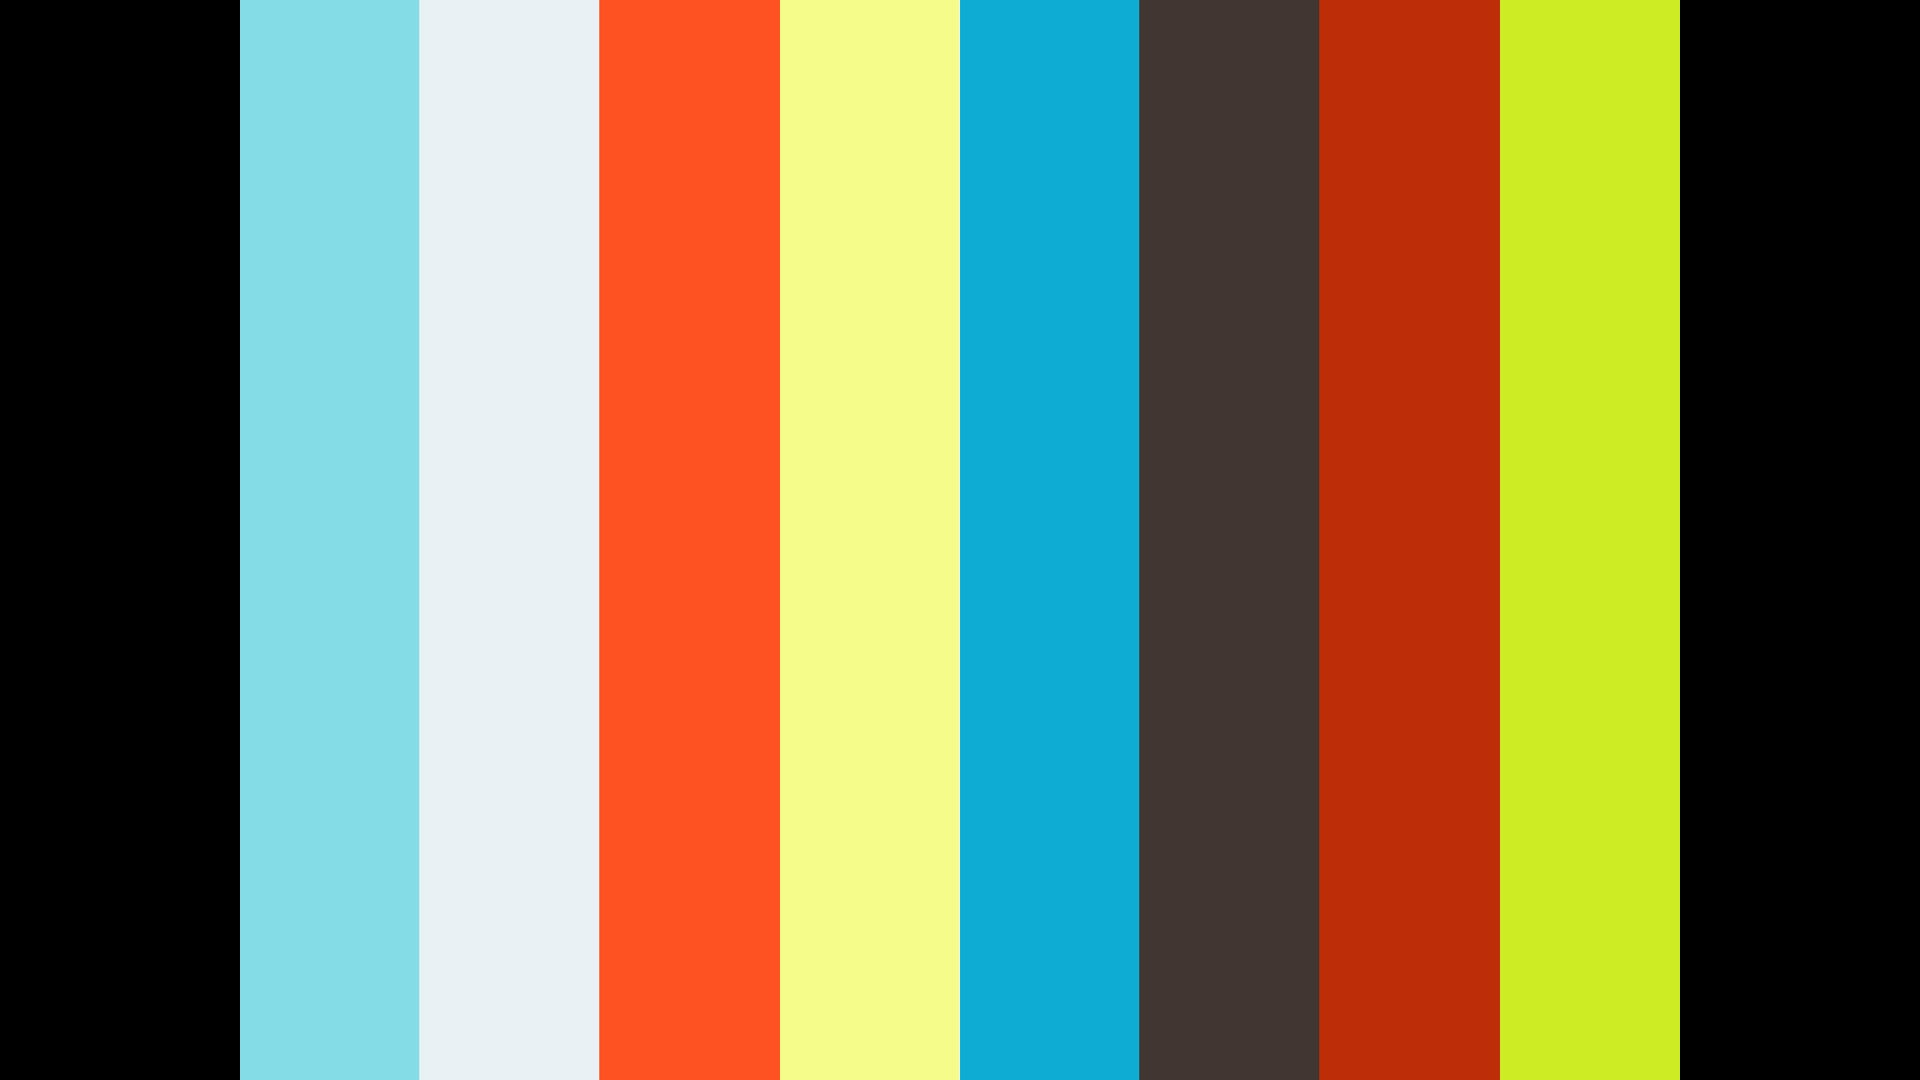 Part 5 - Insert Coin - Violence in Video Games